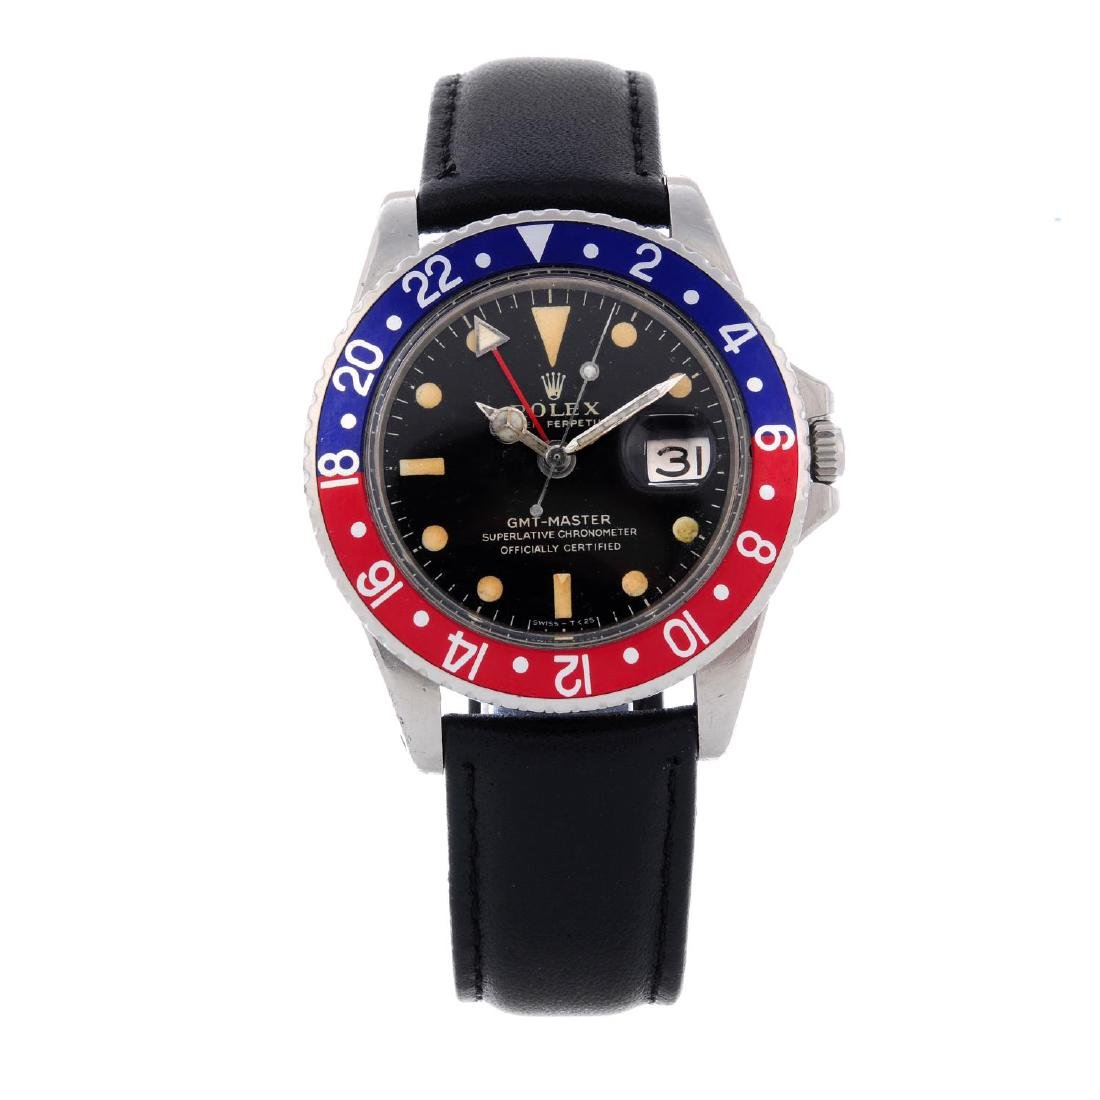 ROLEX - a gentleman's Oyster Perpetual GMT-Master wrist